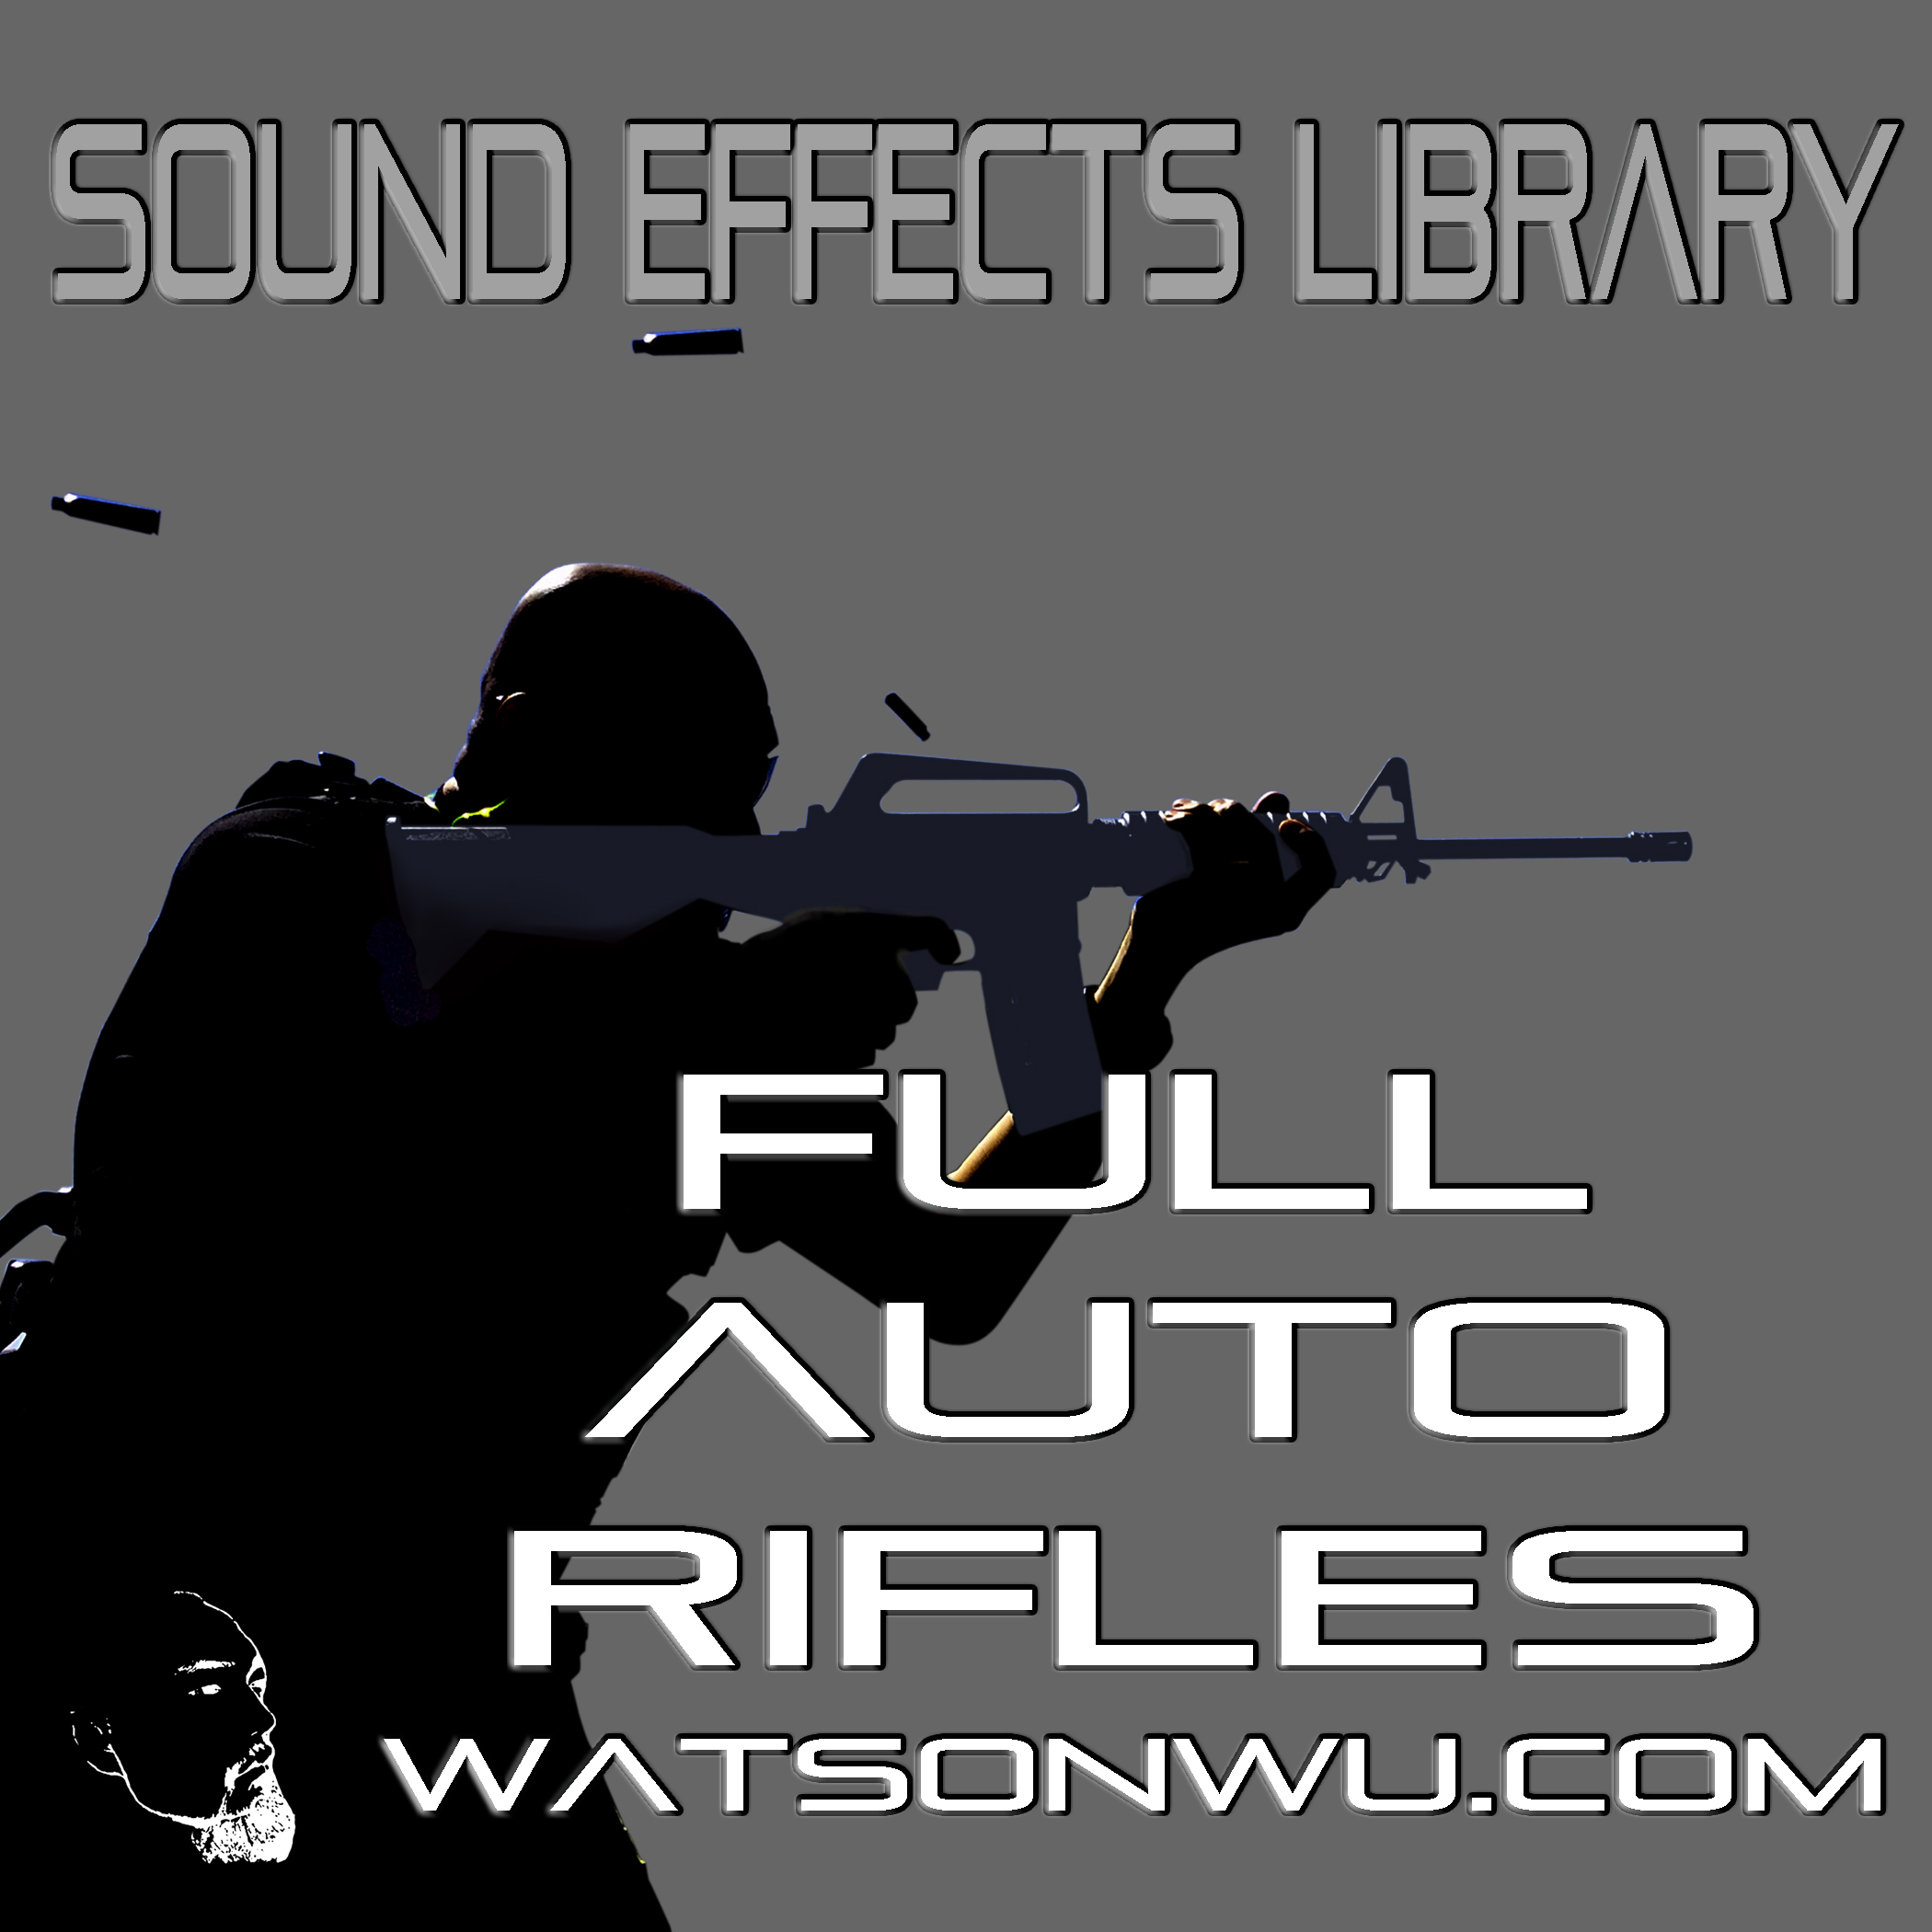 Early Memorial Day sales news! The complete FullAuto sound effects library (parts 1 & 2) is now On Sale! The 450 stereo wave files (24/96) were rendered from a 10 channel field recording session of four full automatic rifles. Each are of different calibers with mics positioned to capture sounds of close, medium, far, and incoming perspectives. Shooting modes are Single shots, Burst shots, and Magdump shots. Gun foley sounds are also included.  Go to   THE STORE   to listen to the audio demo, watch the session video, and purchase a copy TODAY!